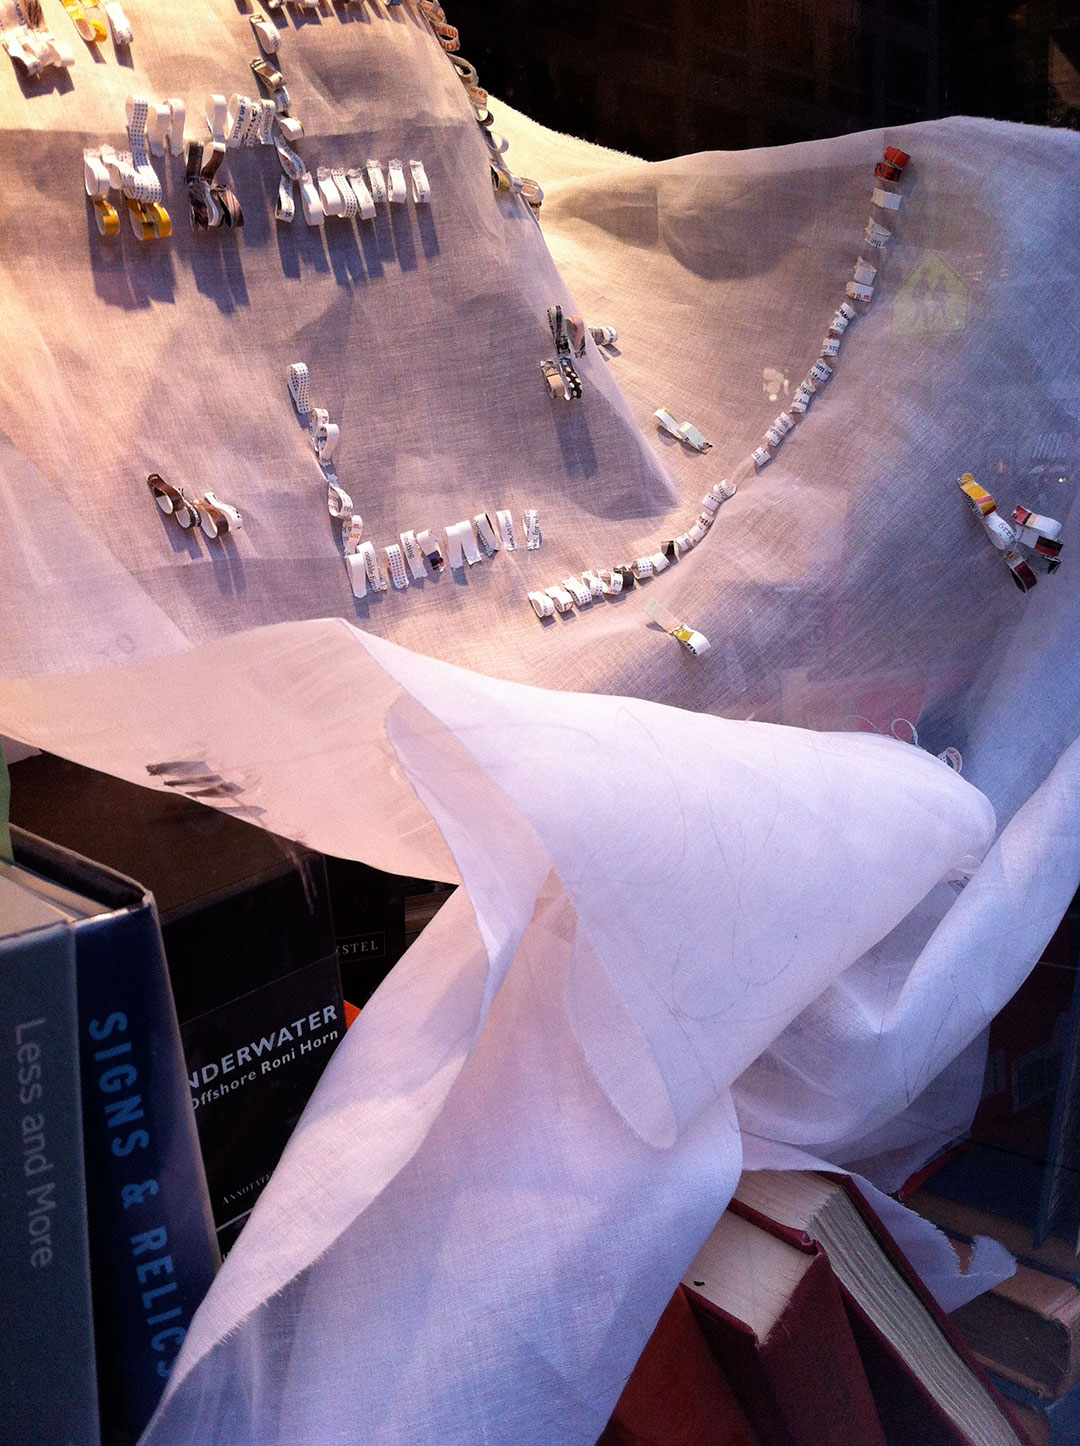 Shredded: Off the Grid, panel 2, installation view at the Manhattan Midown Public Library windows..